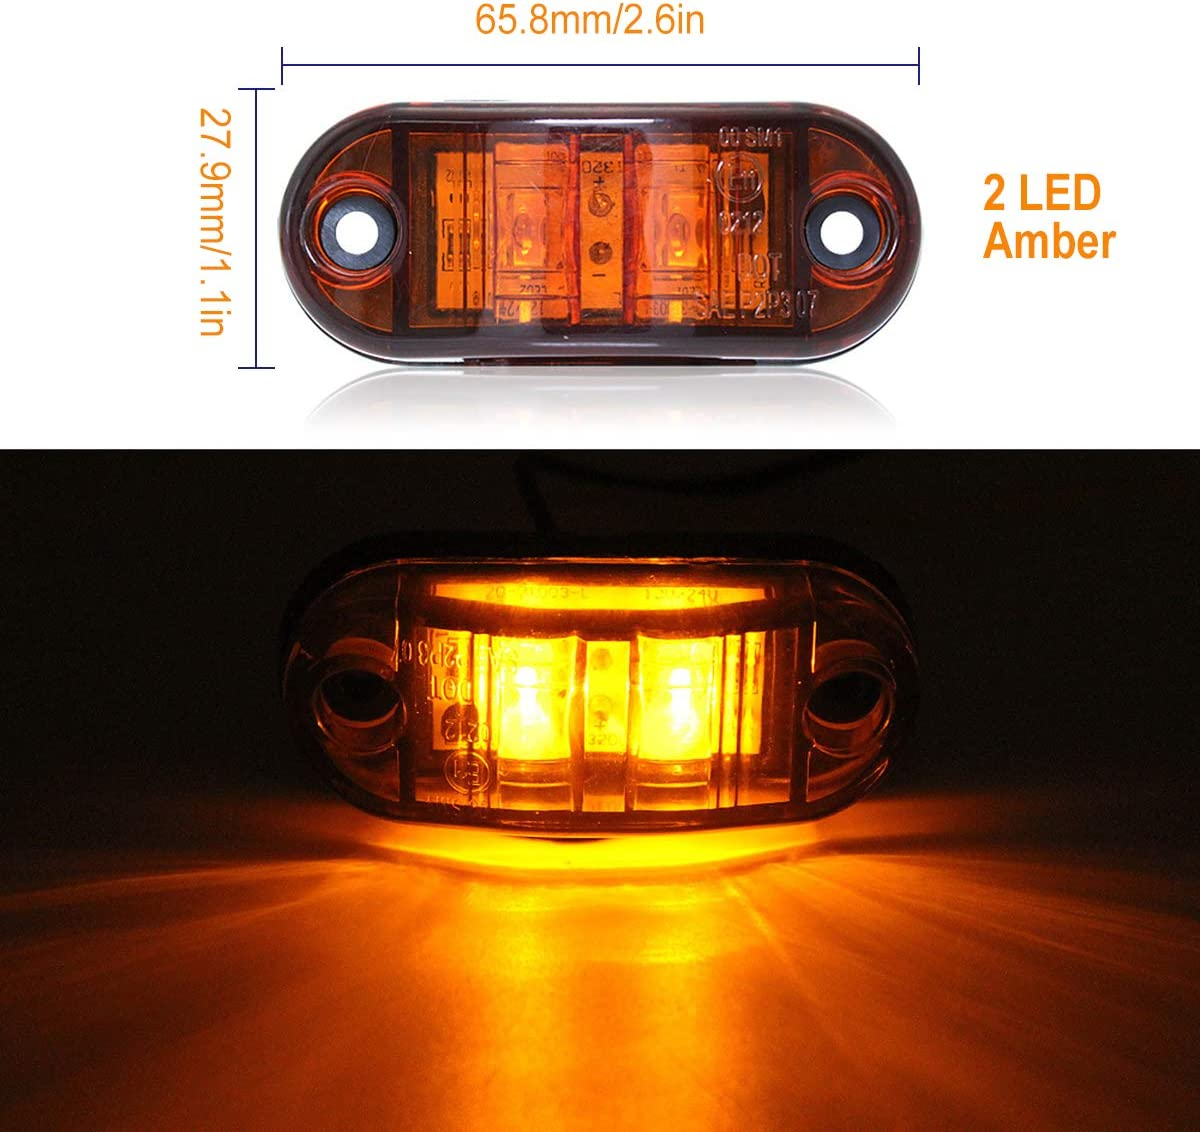 FICBOX 6Pcs Side Marker Light 2.6 2 Diode Oval LED Clearance Light For Trailer Truck Amber